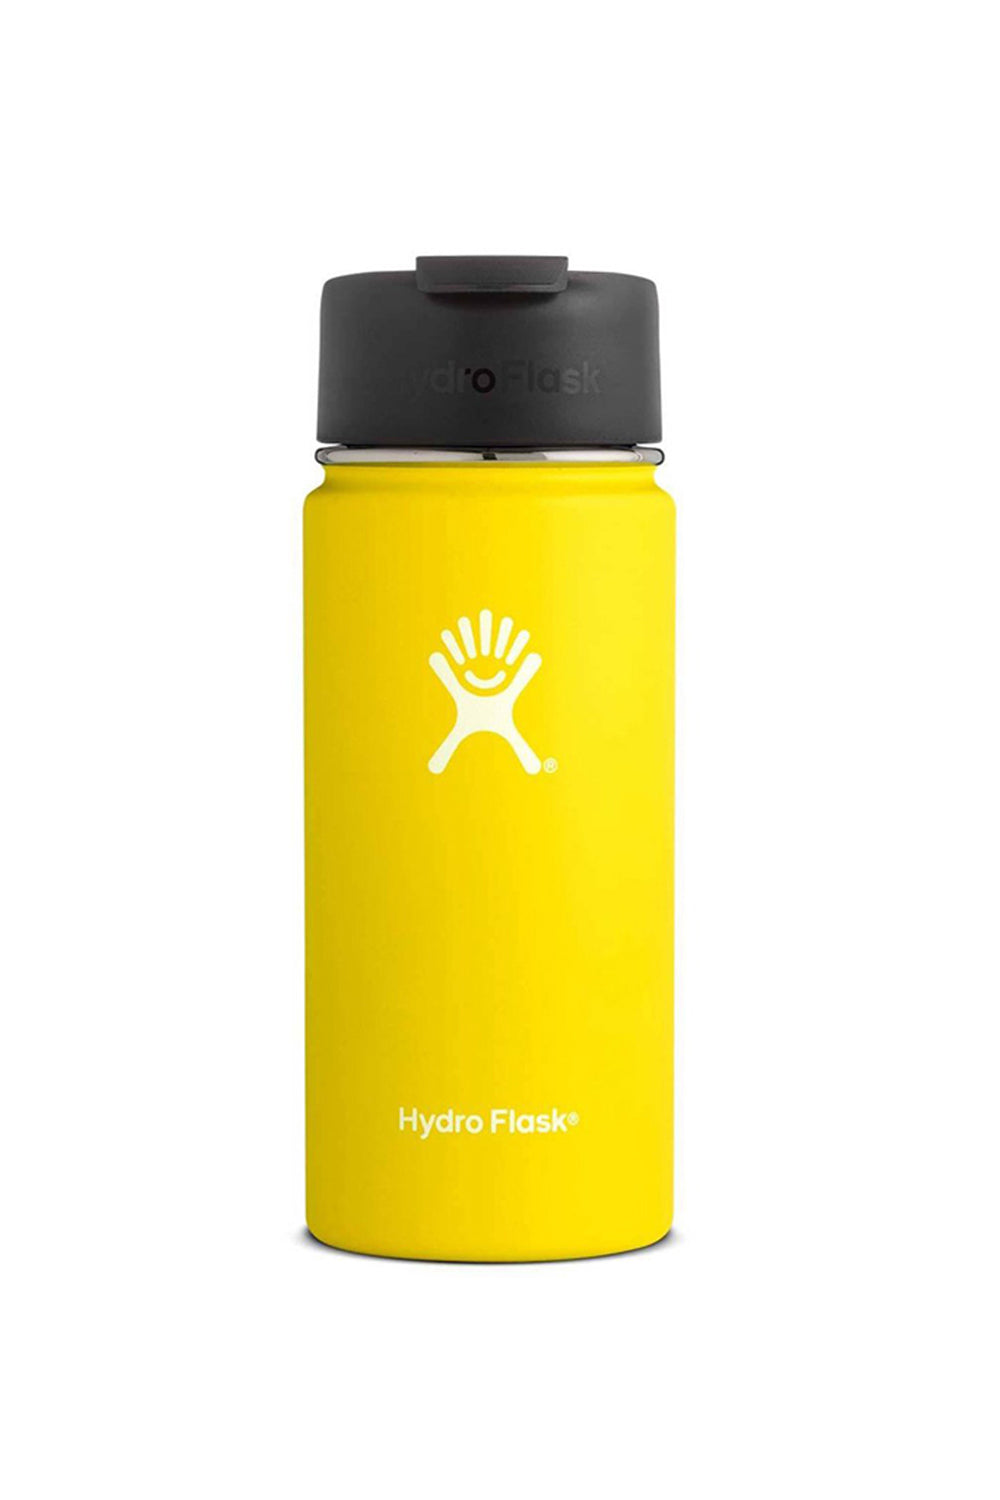 Hydro Flask 16oz (474 ml) Coffee Cup